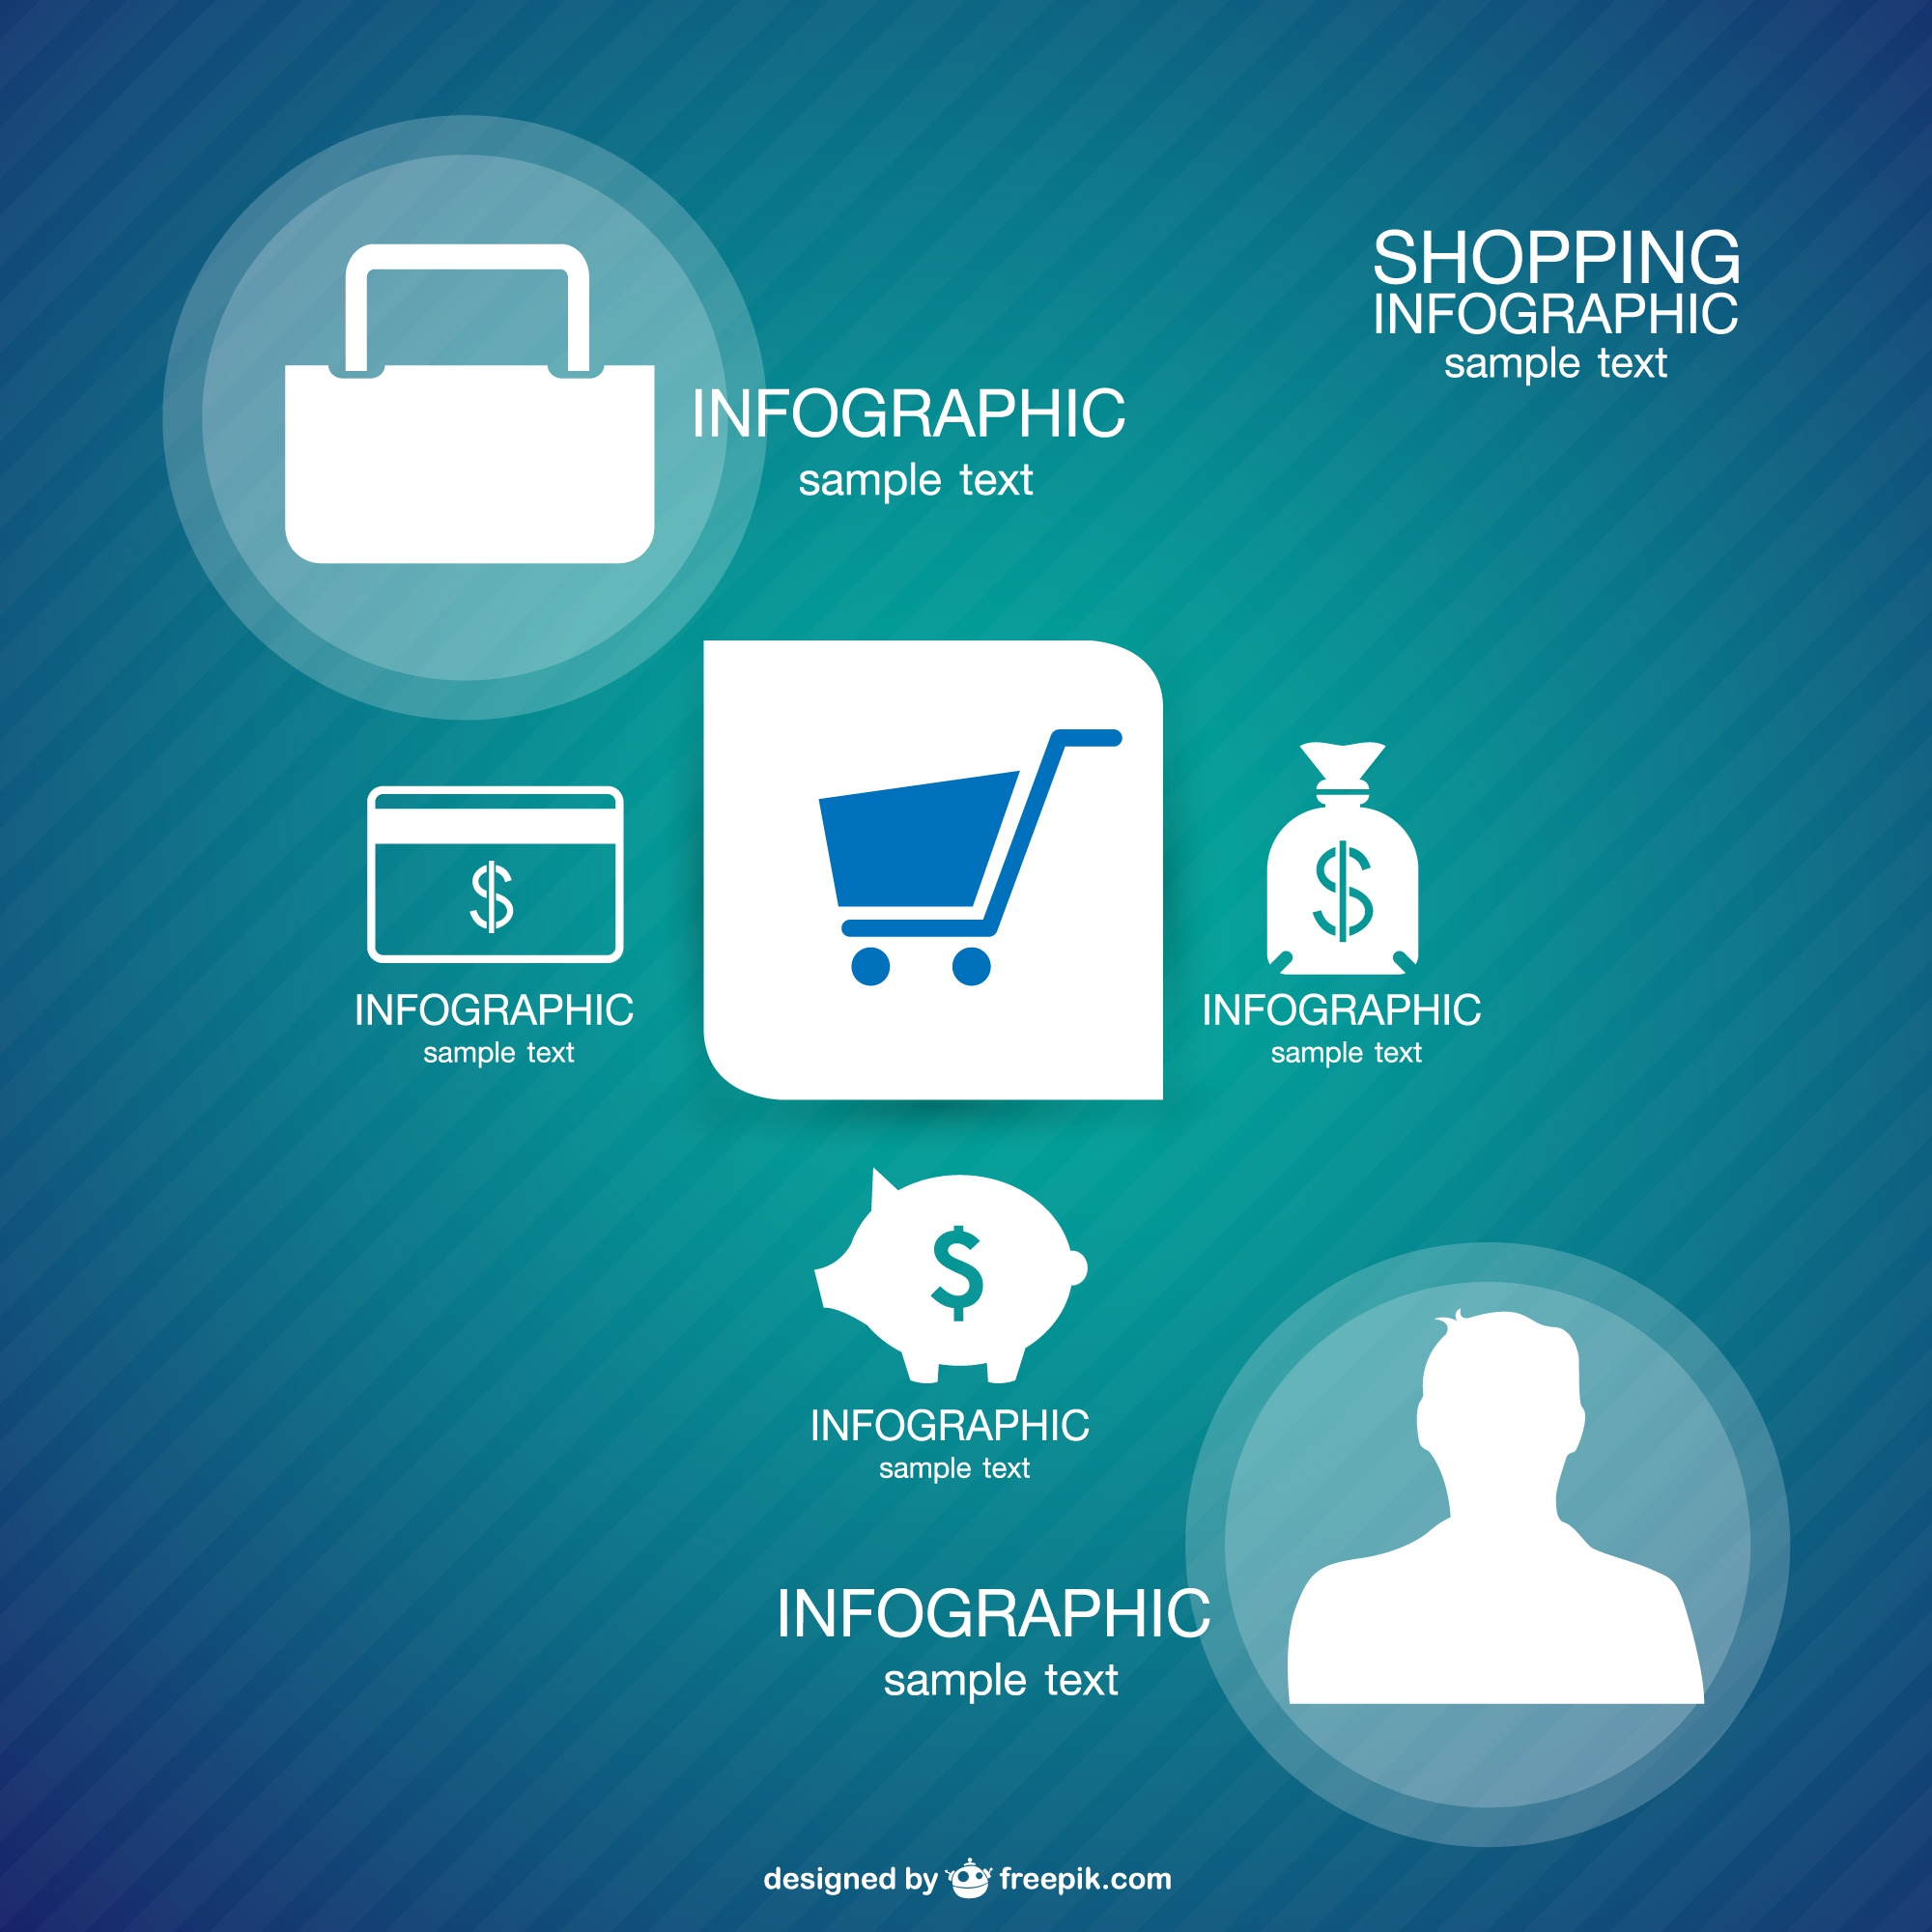 Shopping template infographic